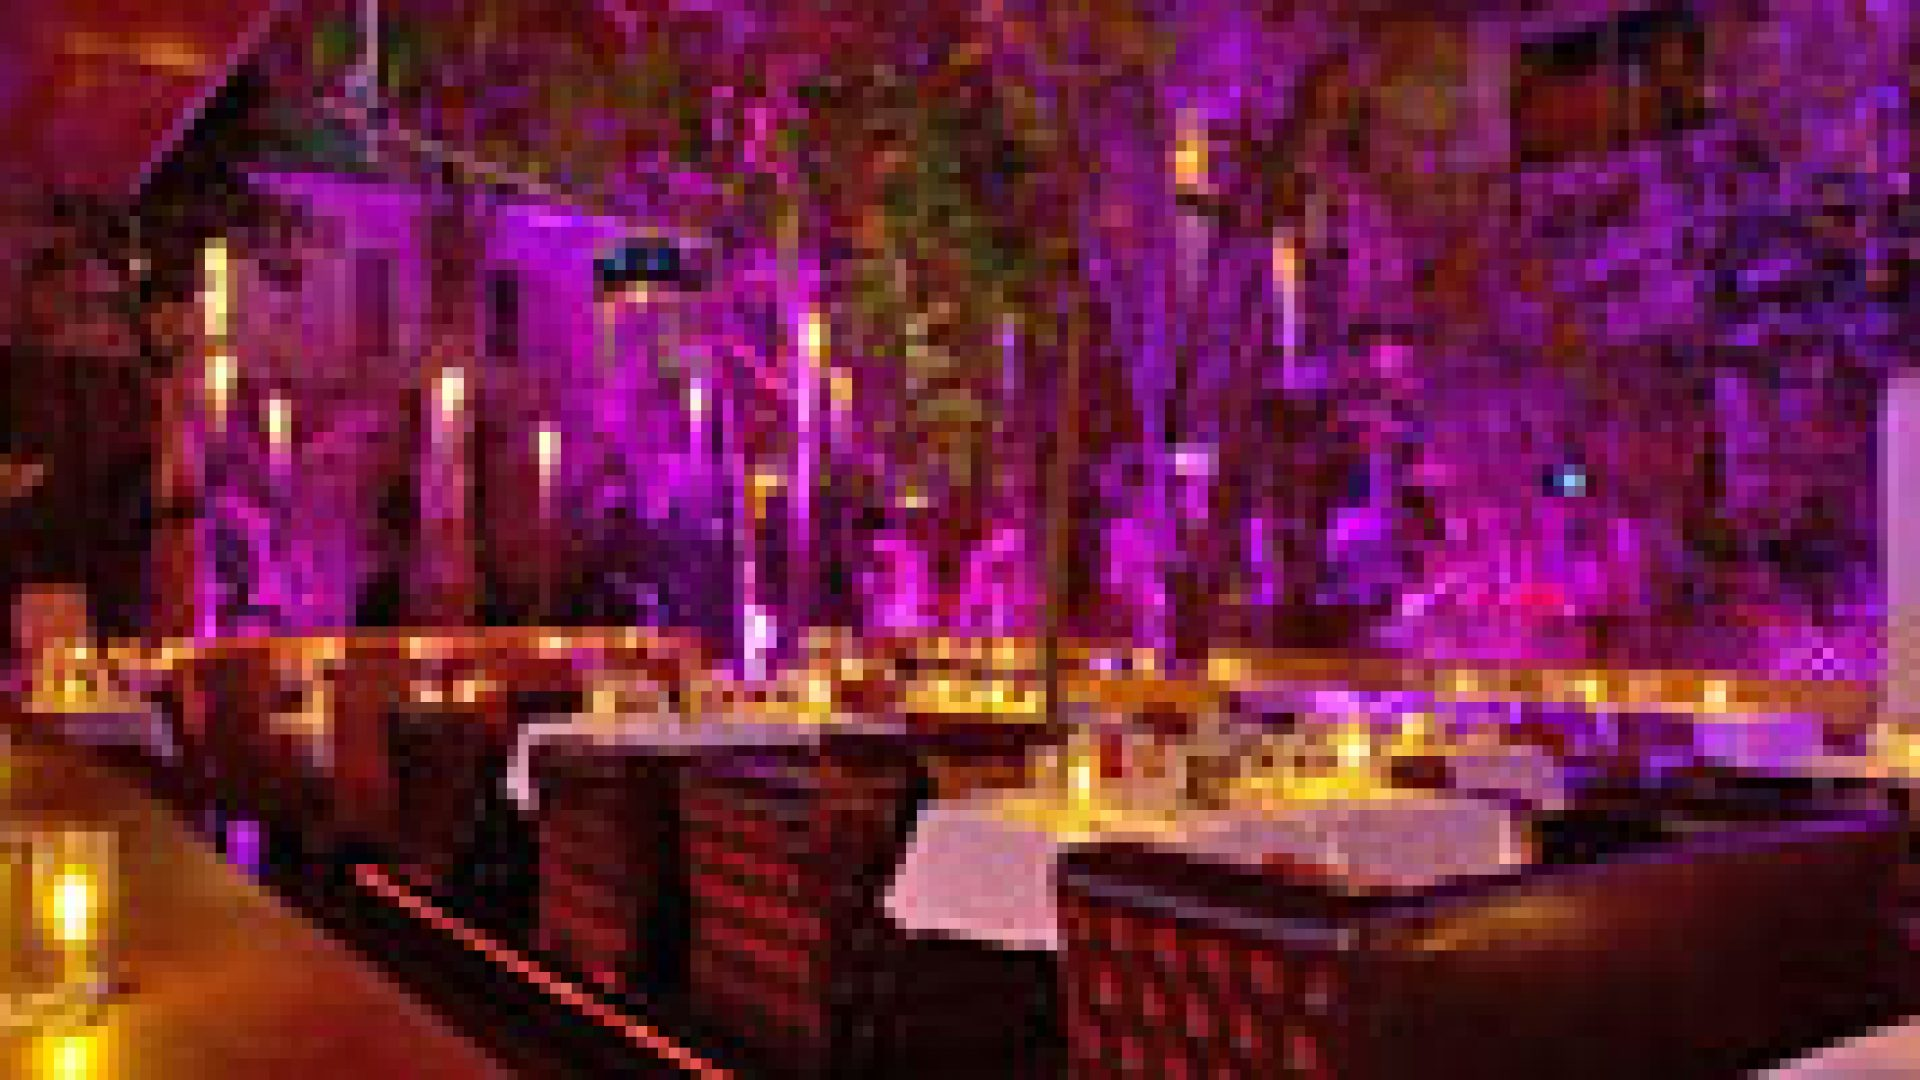 miami beach bars, south beach clubs, things to do in miami, what to do in miami, wednesday night miami, clubs in miami, miami beach restaurants, restaurants in miami, miami beach food, best lounges in miami, top restaurants in miami beach, fun restaurants miami, south beach restaurants, Miami restaurants, Events in miami